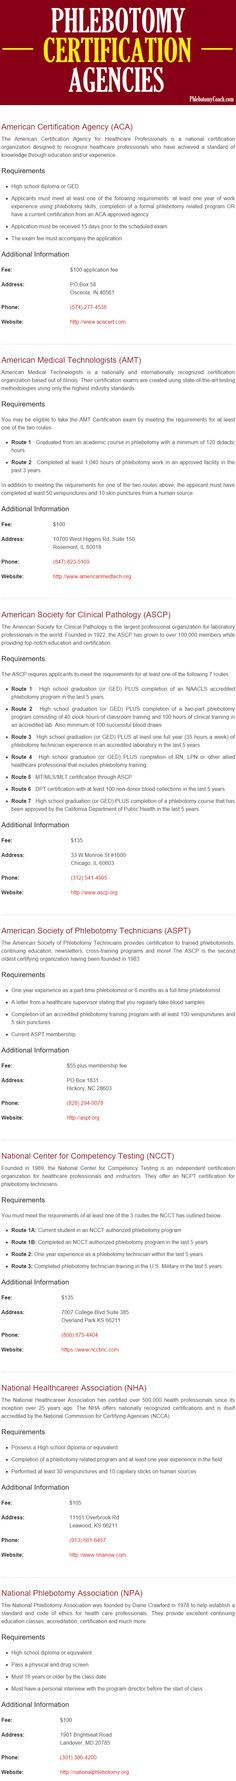 Fast Phlebotomy Certification Images - creative certificate design ...